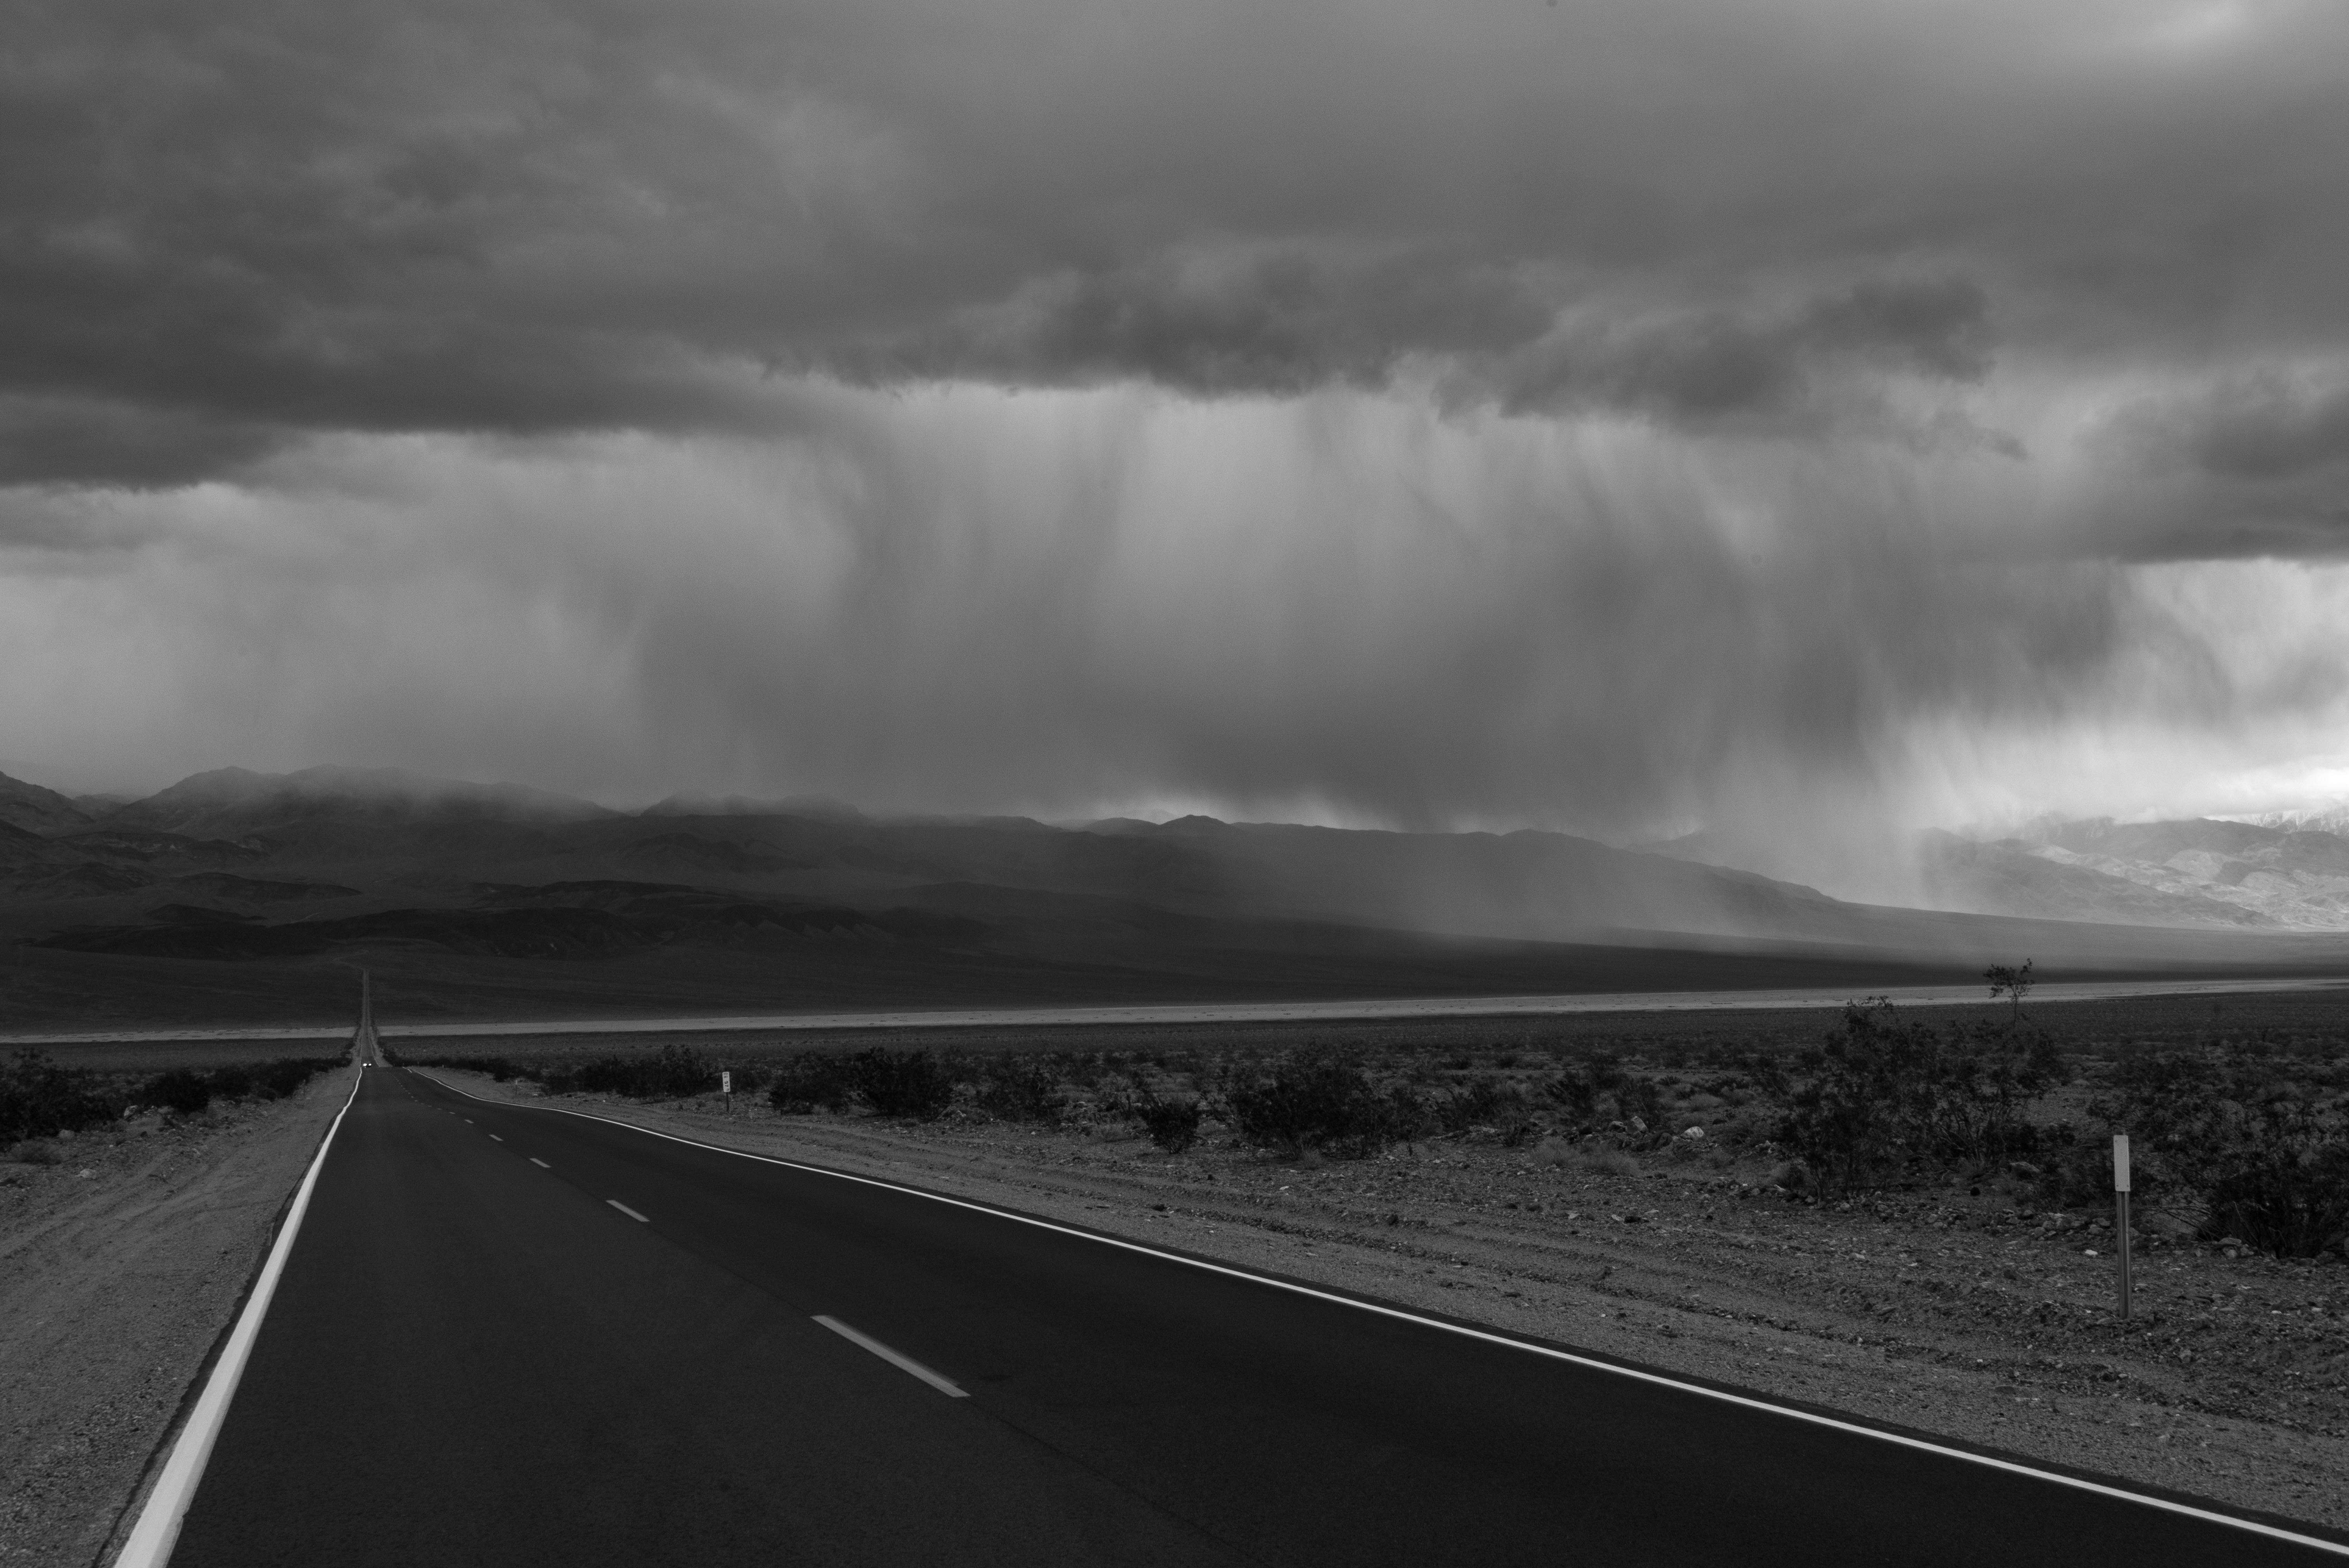 Storm over Panamint